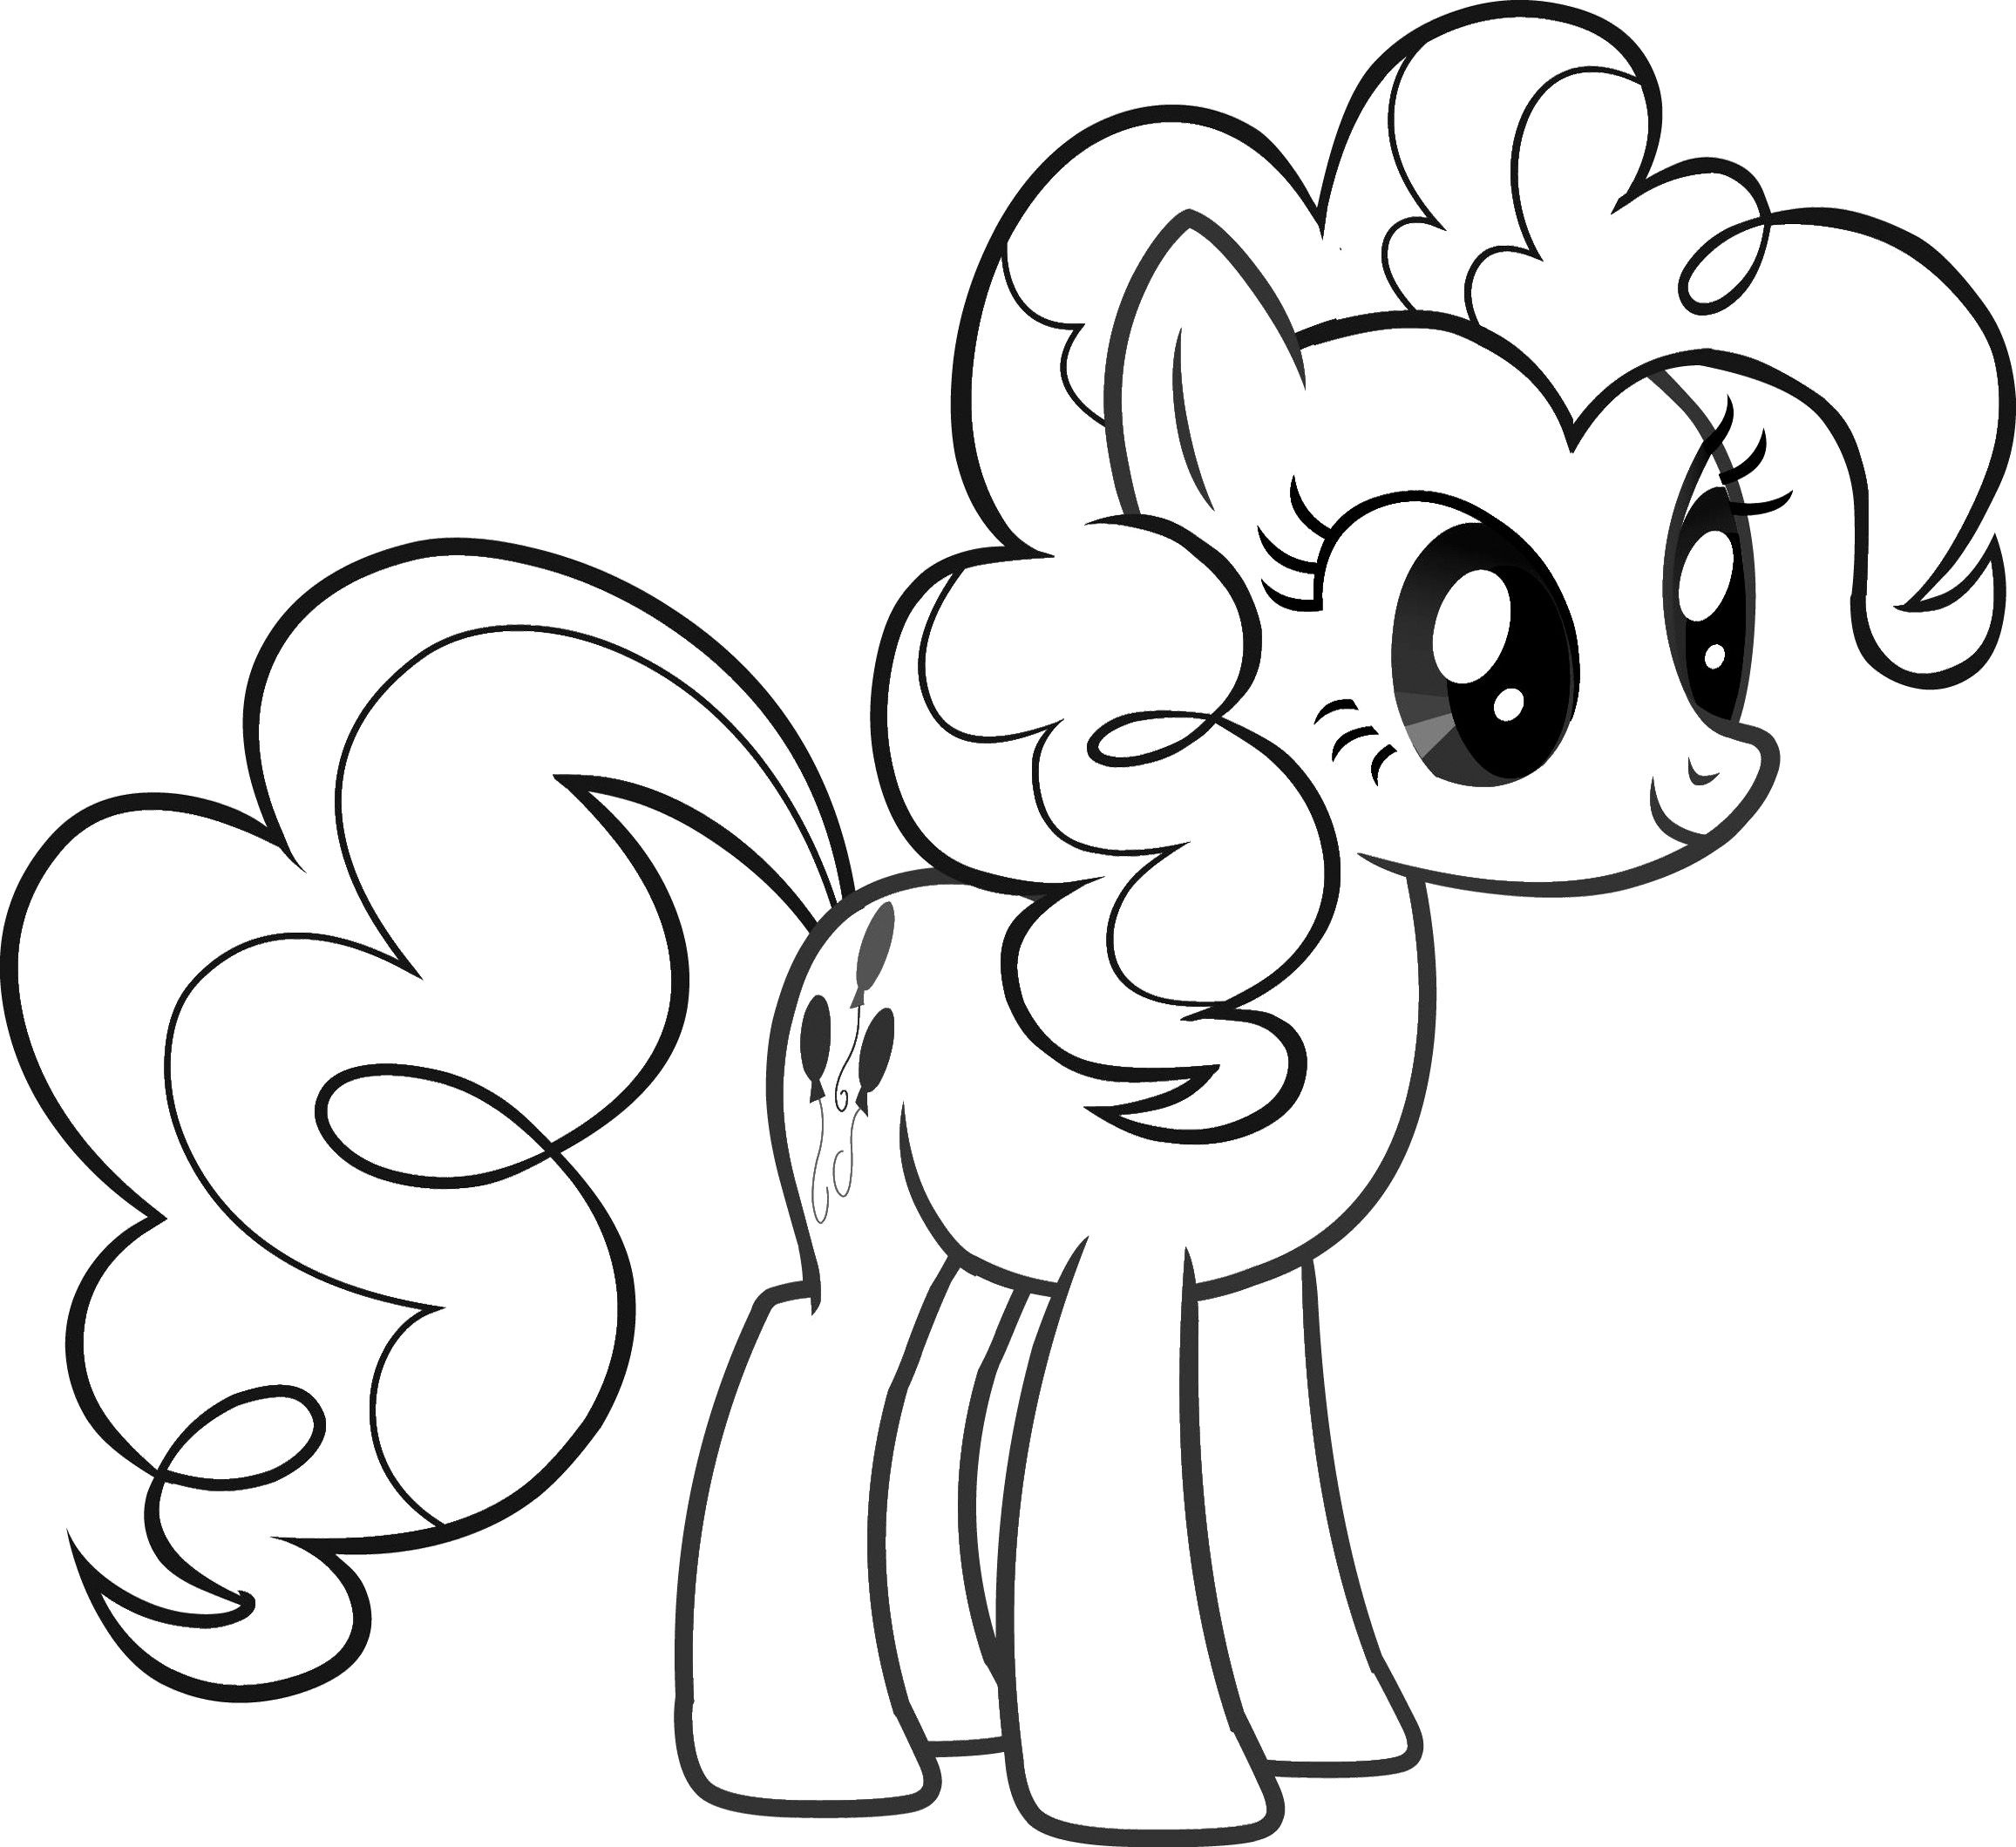 my little pony template my little pony drawing template at getdrawings free download pony my template little